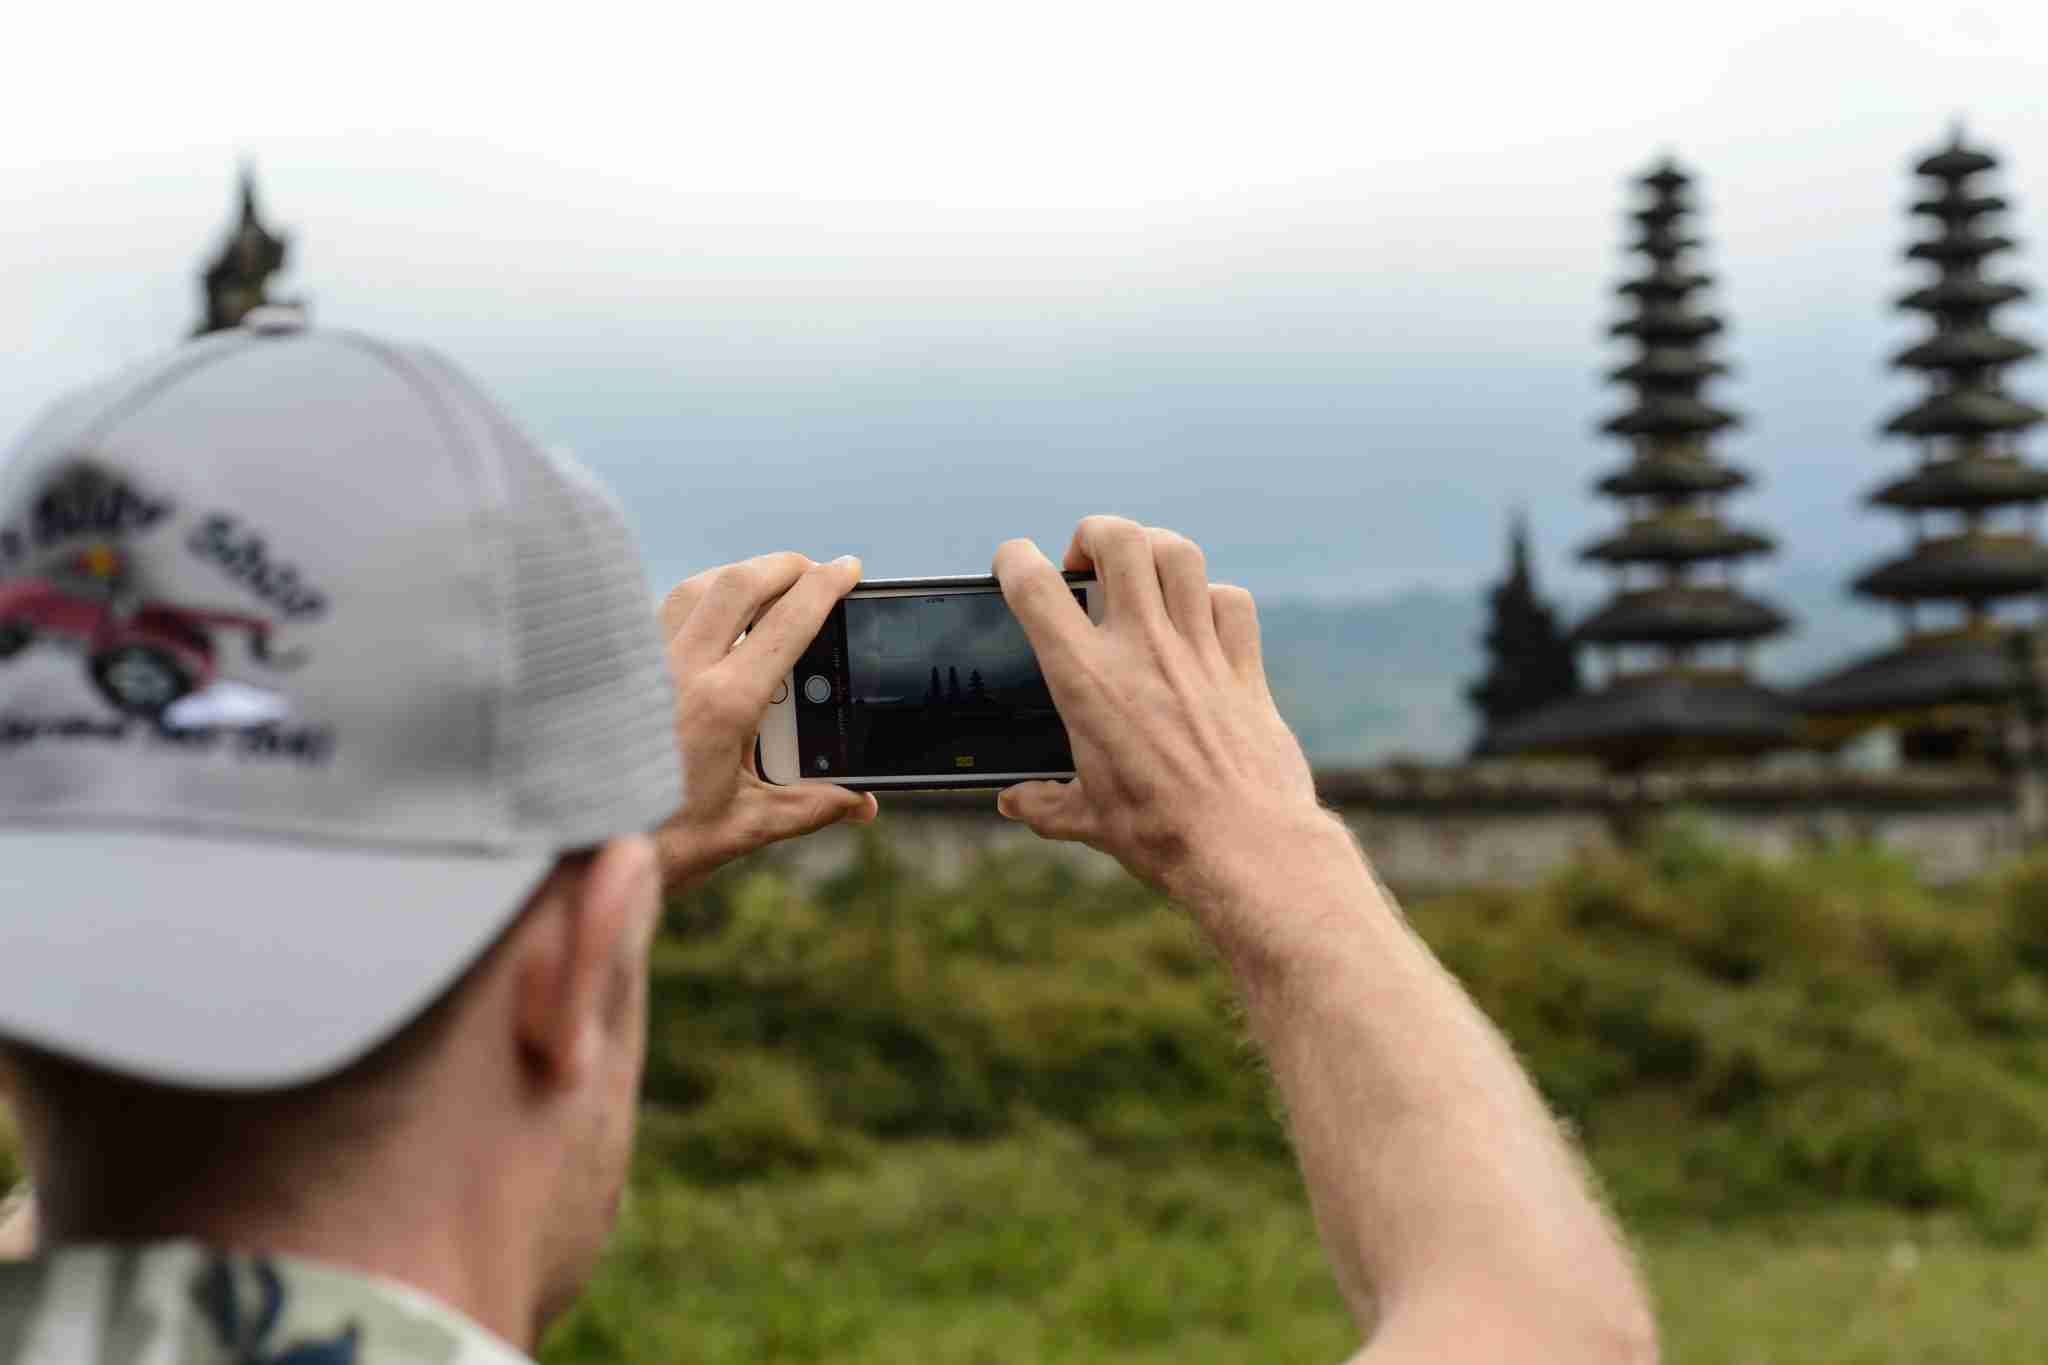 Capturing Indonesia with an iPhone (Photo courtesy of Darren Murph / TPG).